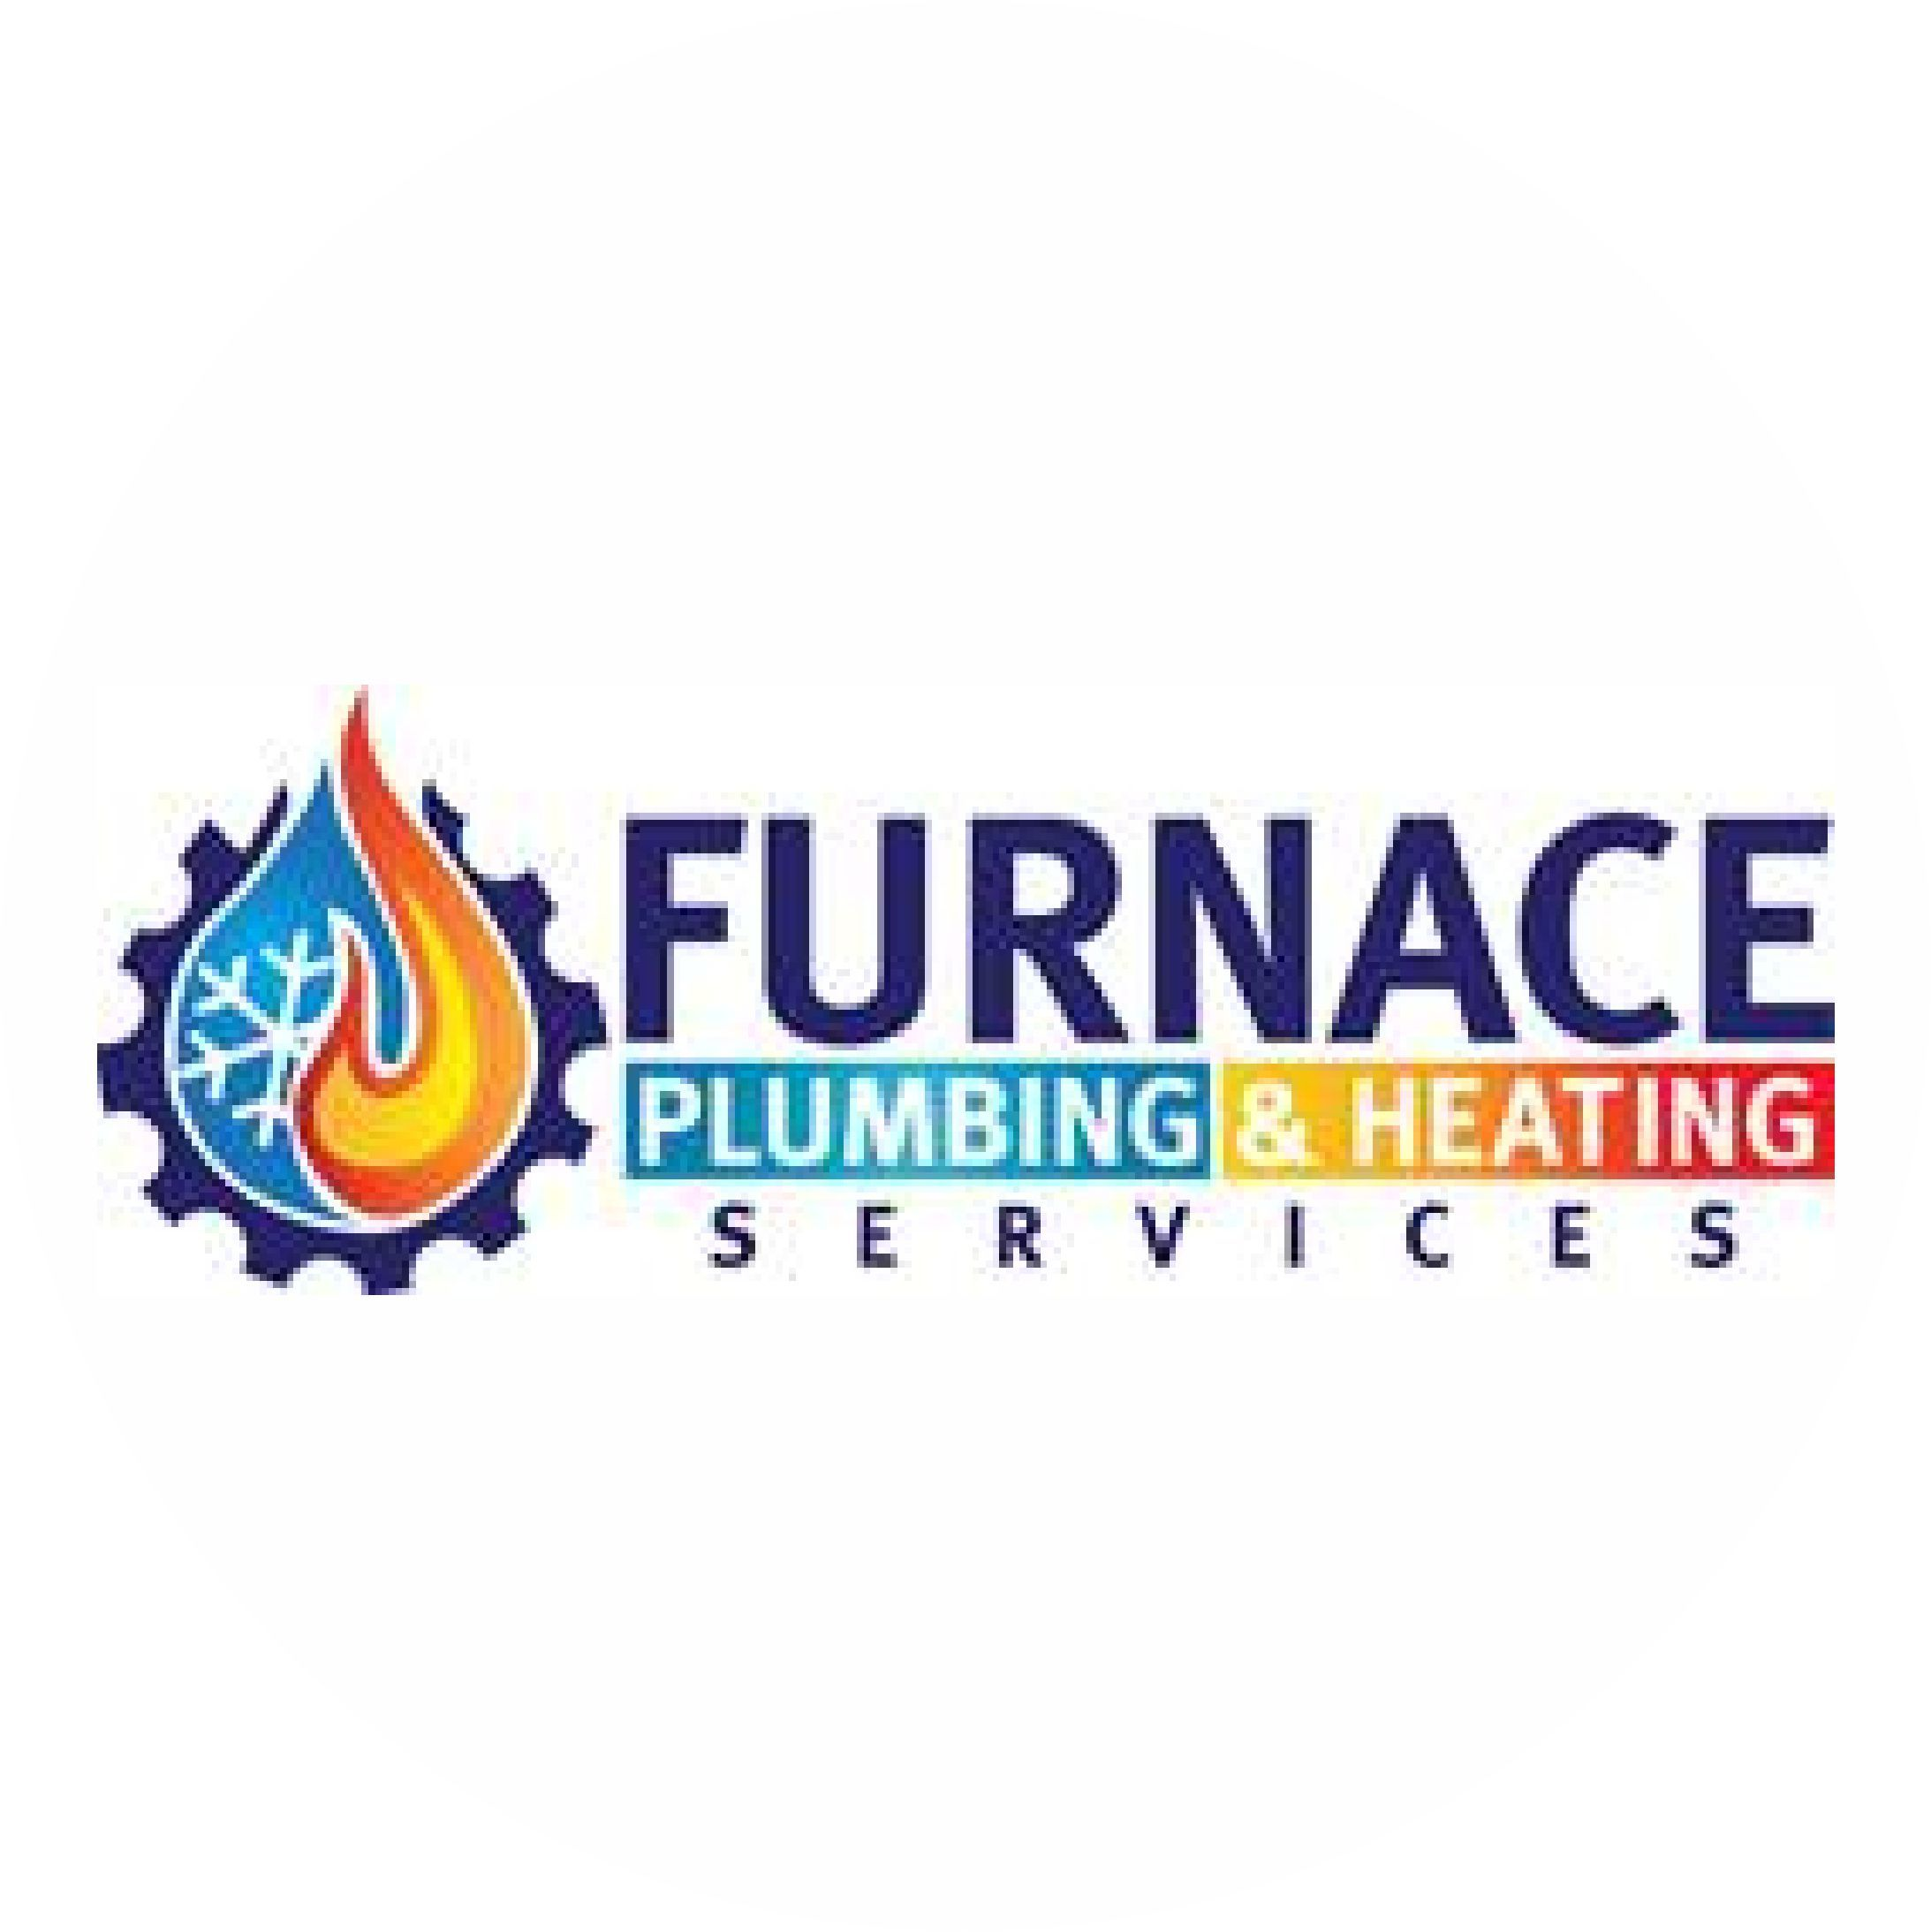 Anna Furness- Furnace Plumbing & Heating Services